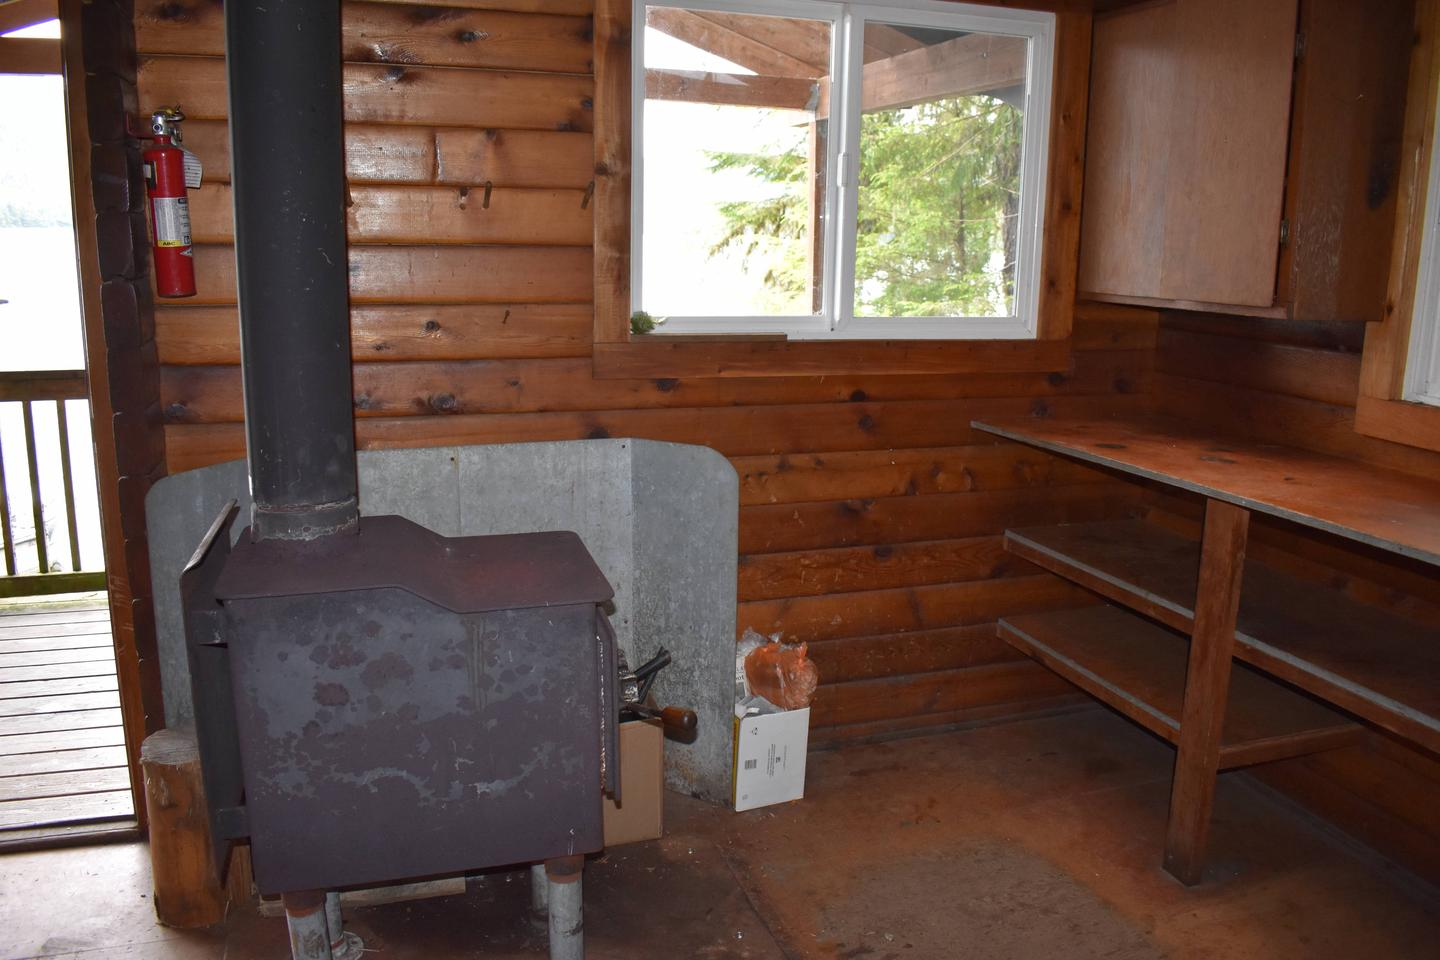 Kitchen Area and Stove